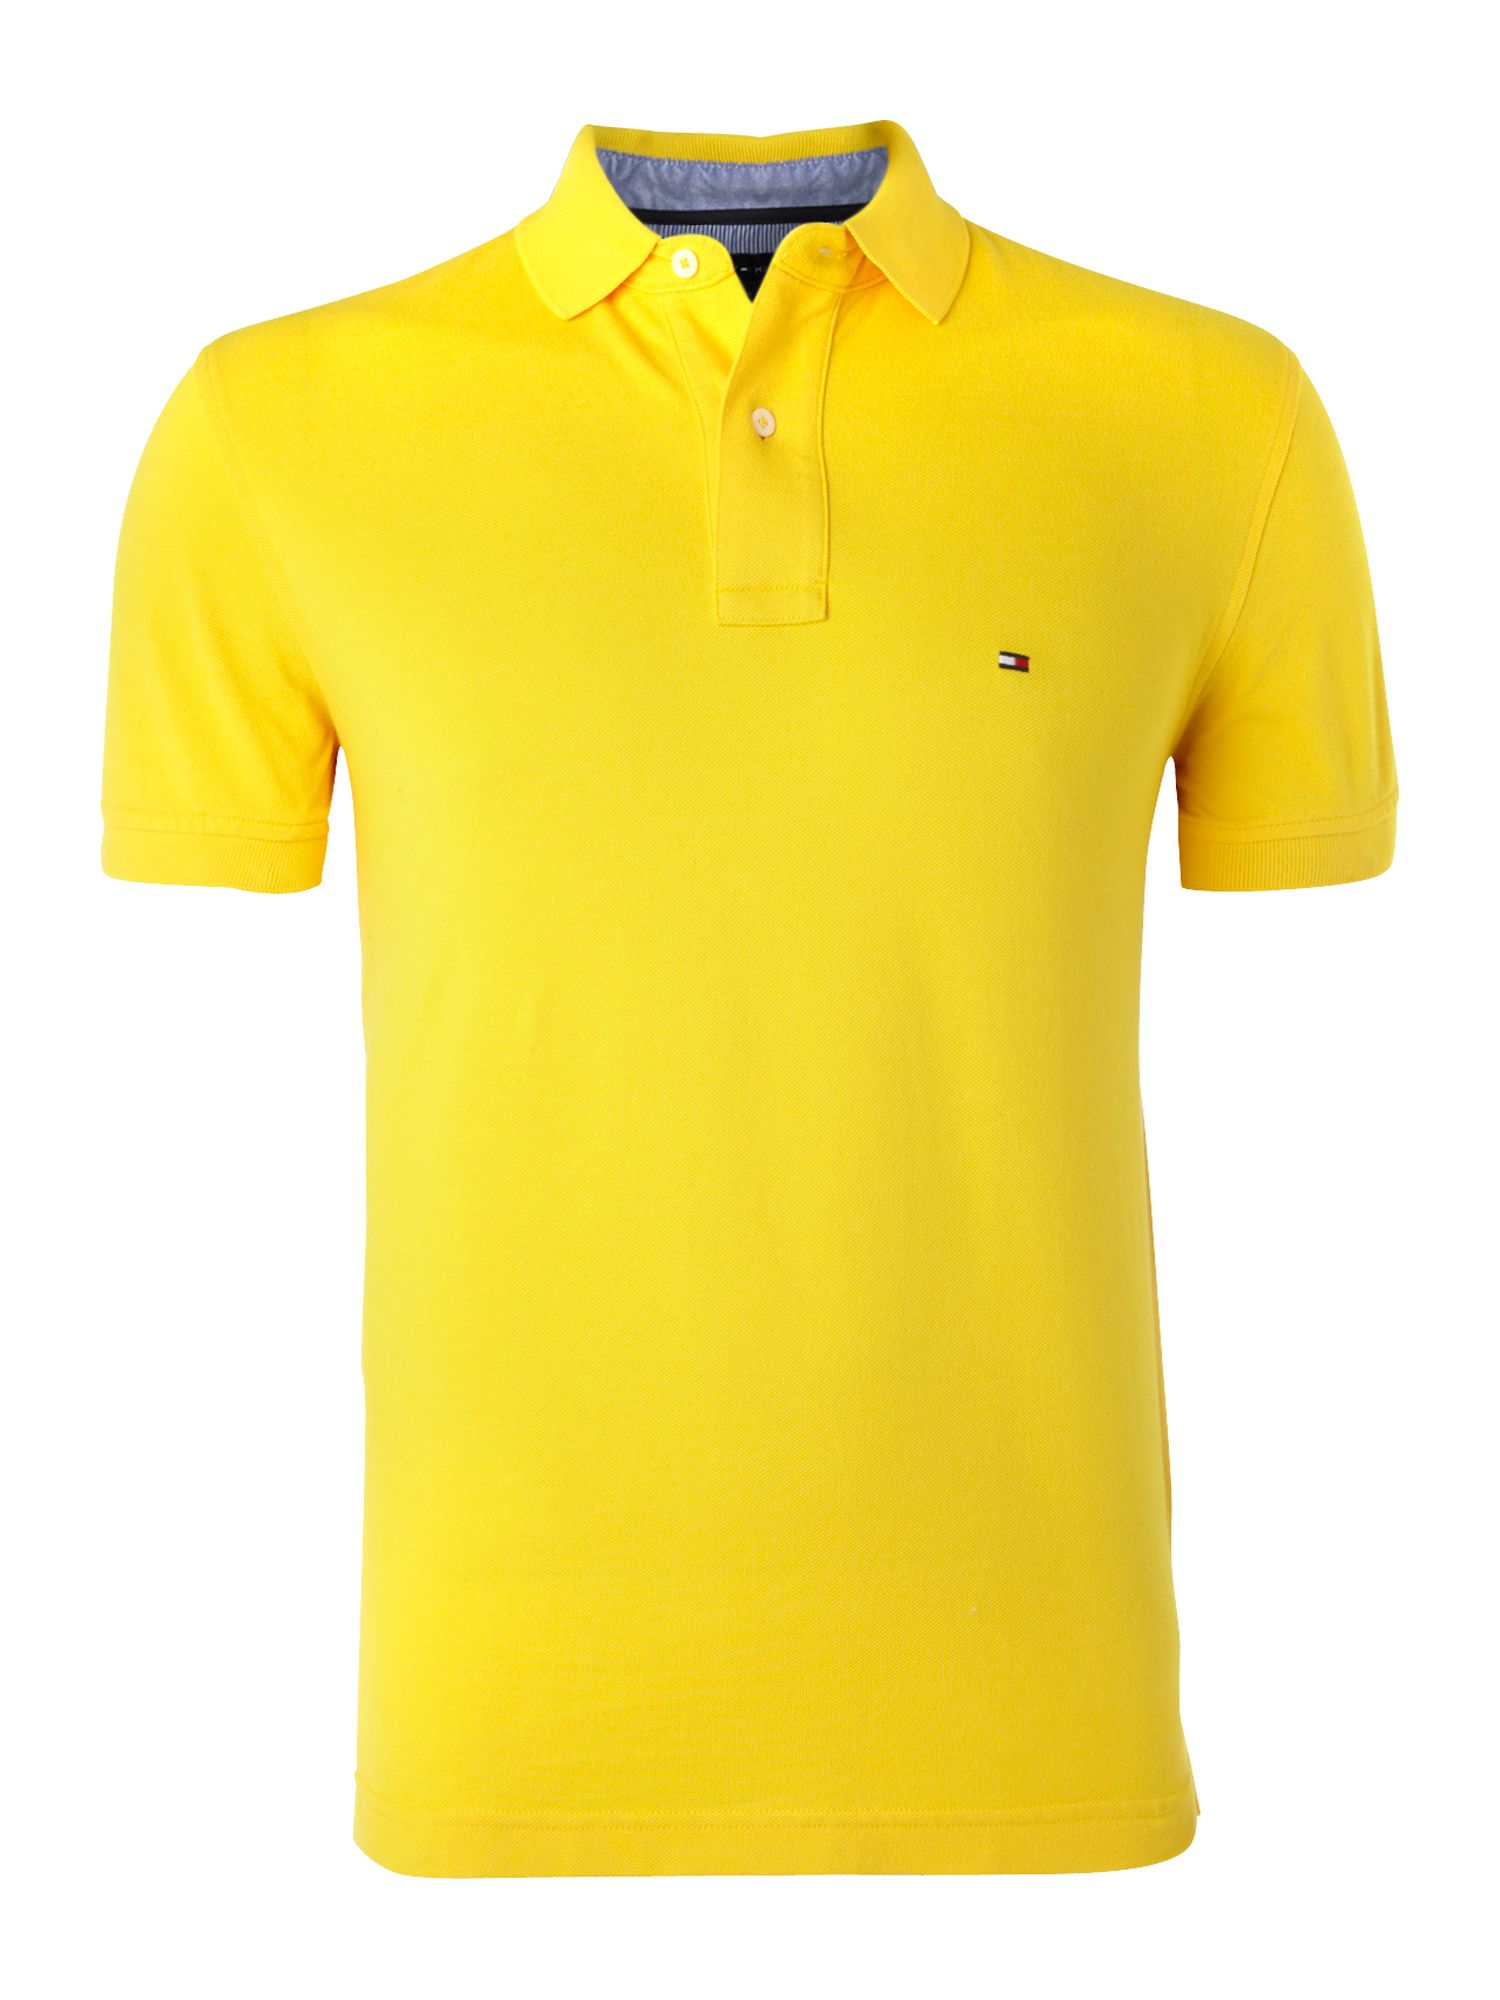 tommy hilfiger shortsleeve polo shirt in yellow for men lyst. Black Bedroom Furniture Sets. Home Design Ideas